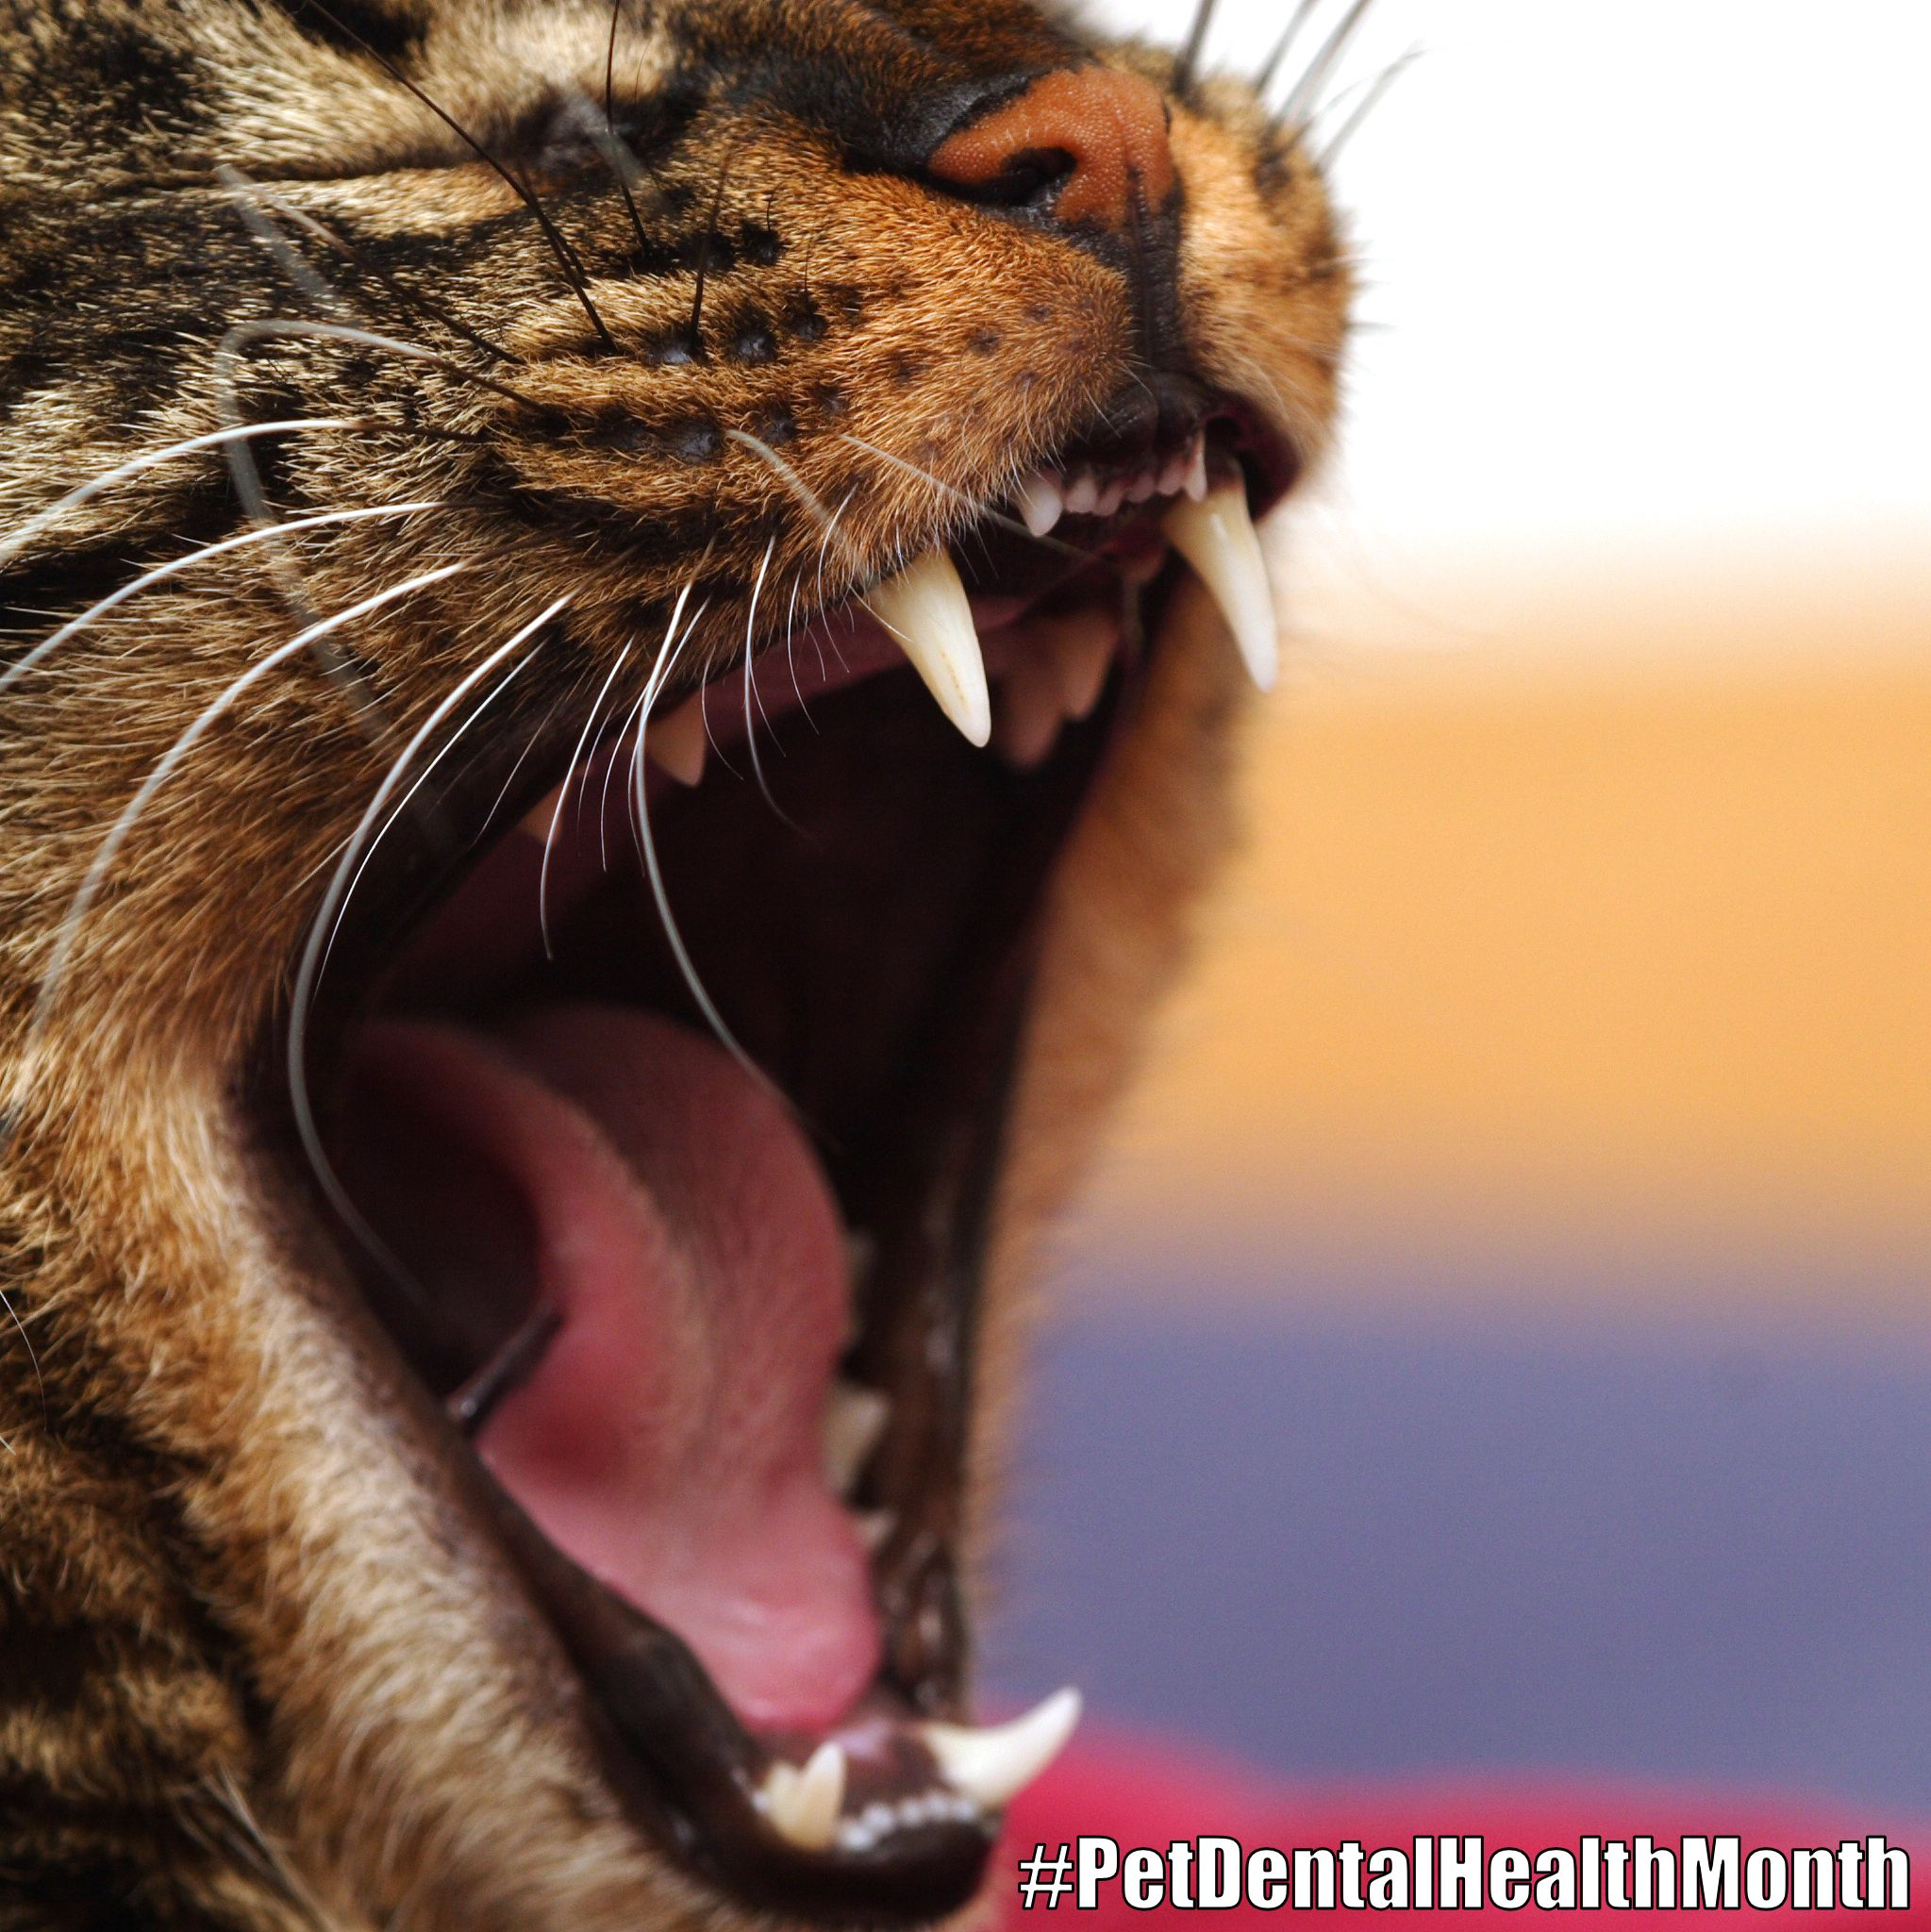 Brush your cat's teeth frequently—every day is ideal #CatHealth #DentalTips #PetDentalHealthMonth